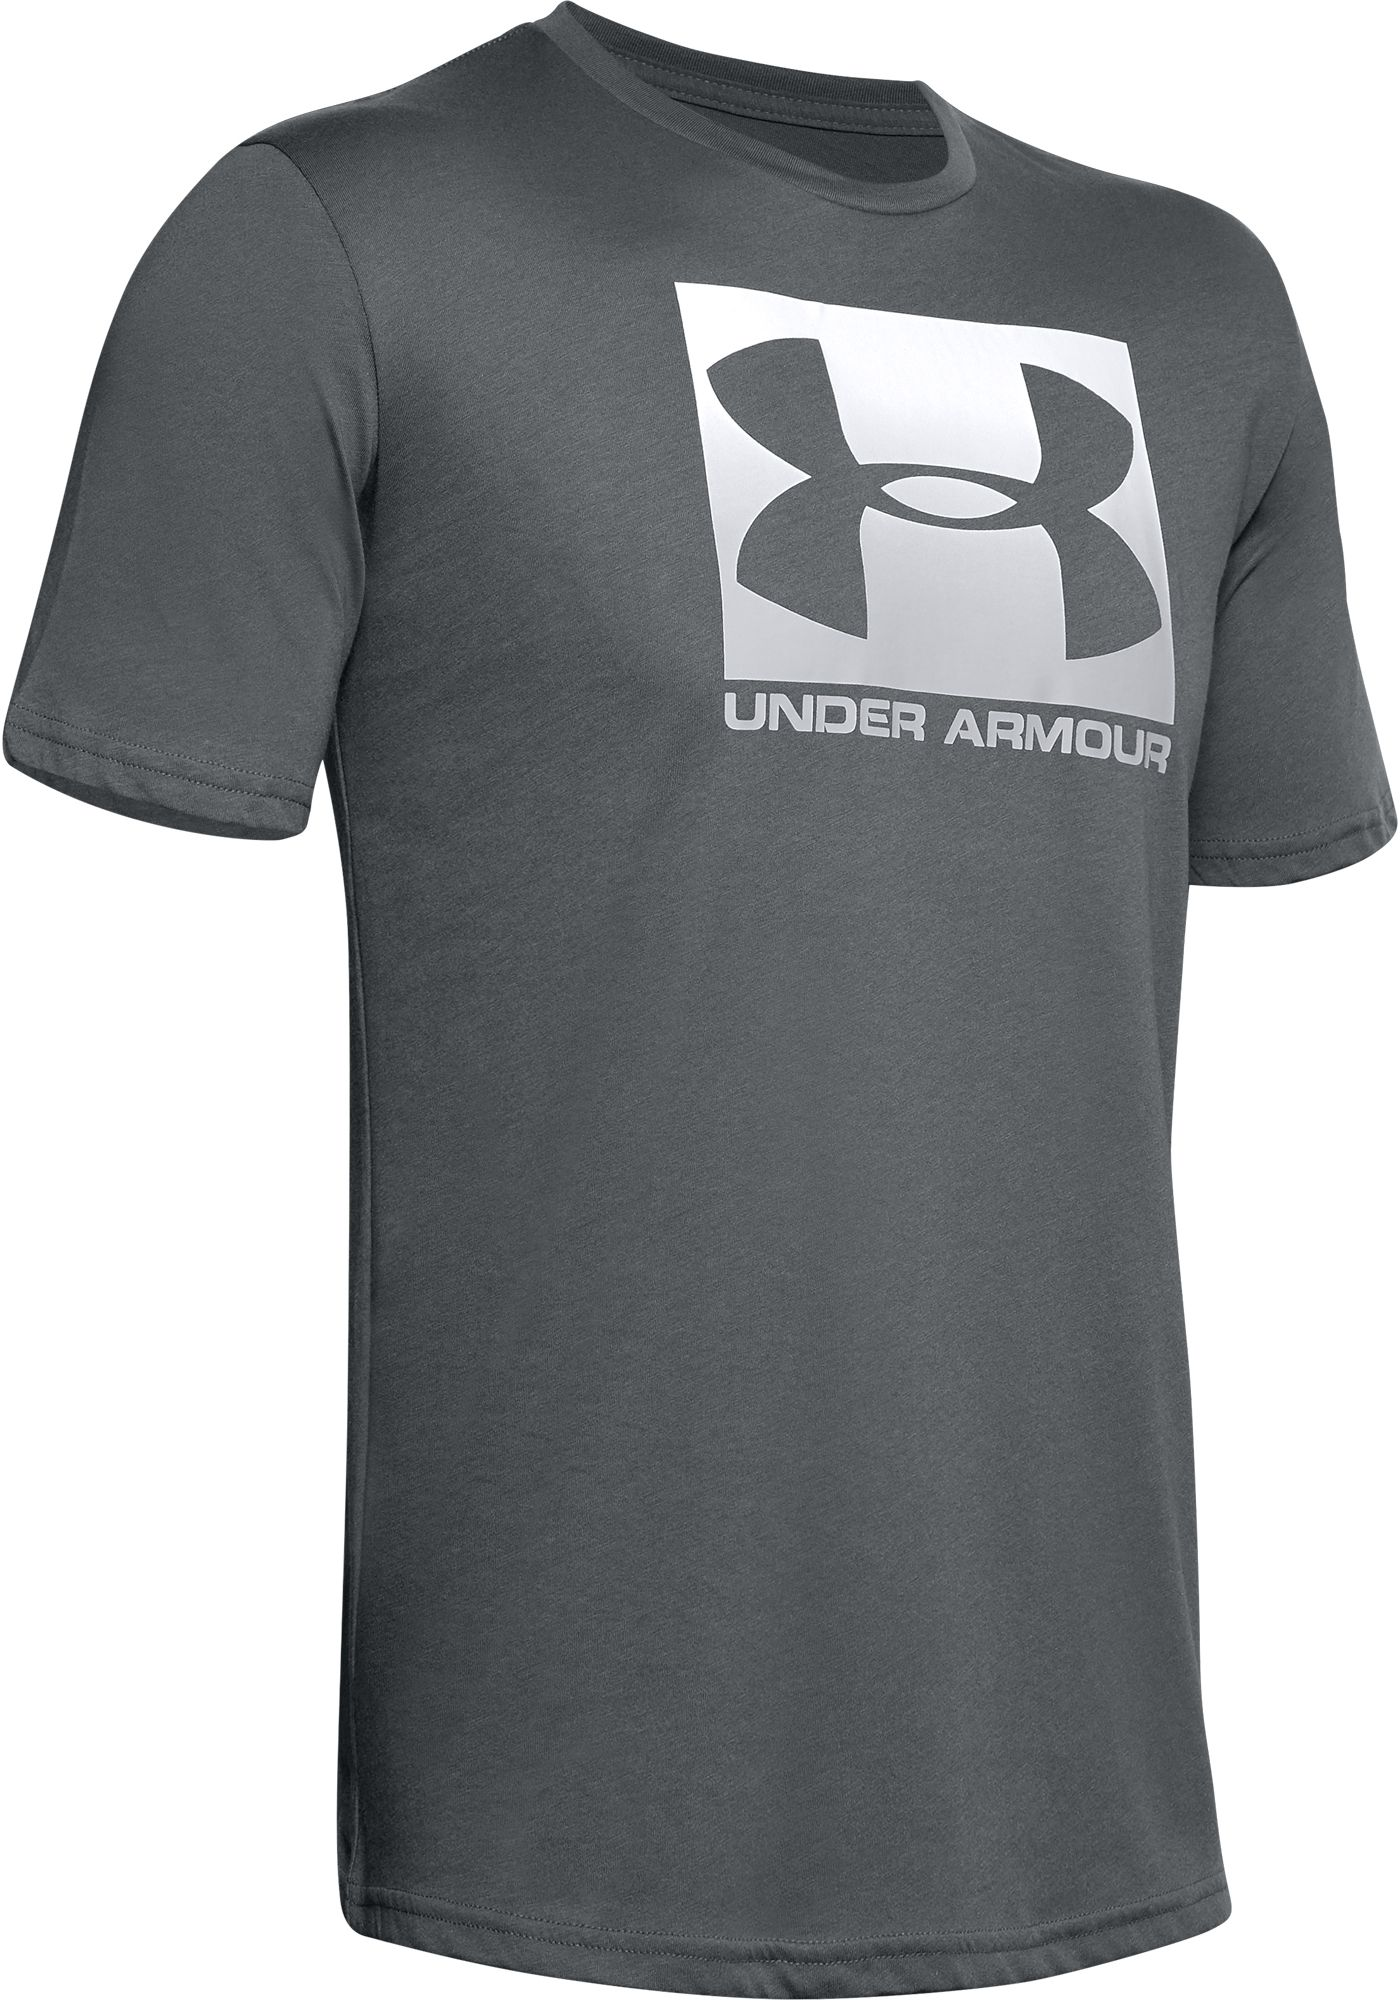 Under Armour Men's Boxed Sportstyle Graphic T-Shirt (Regular and Big & Tall)